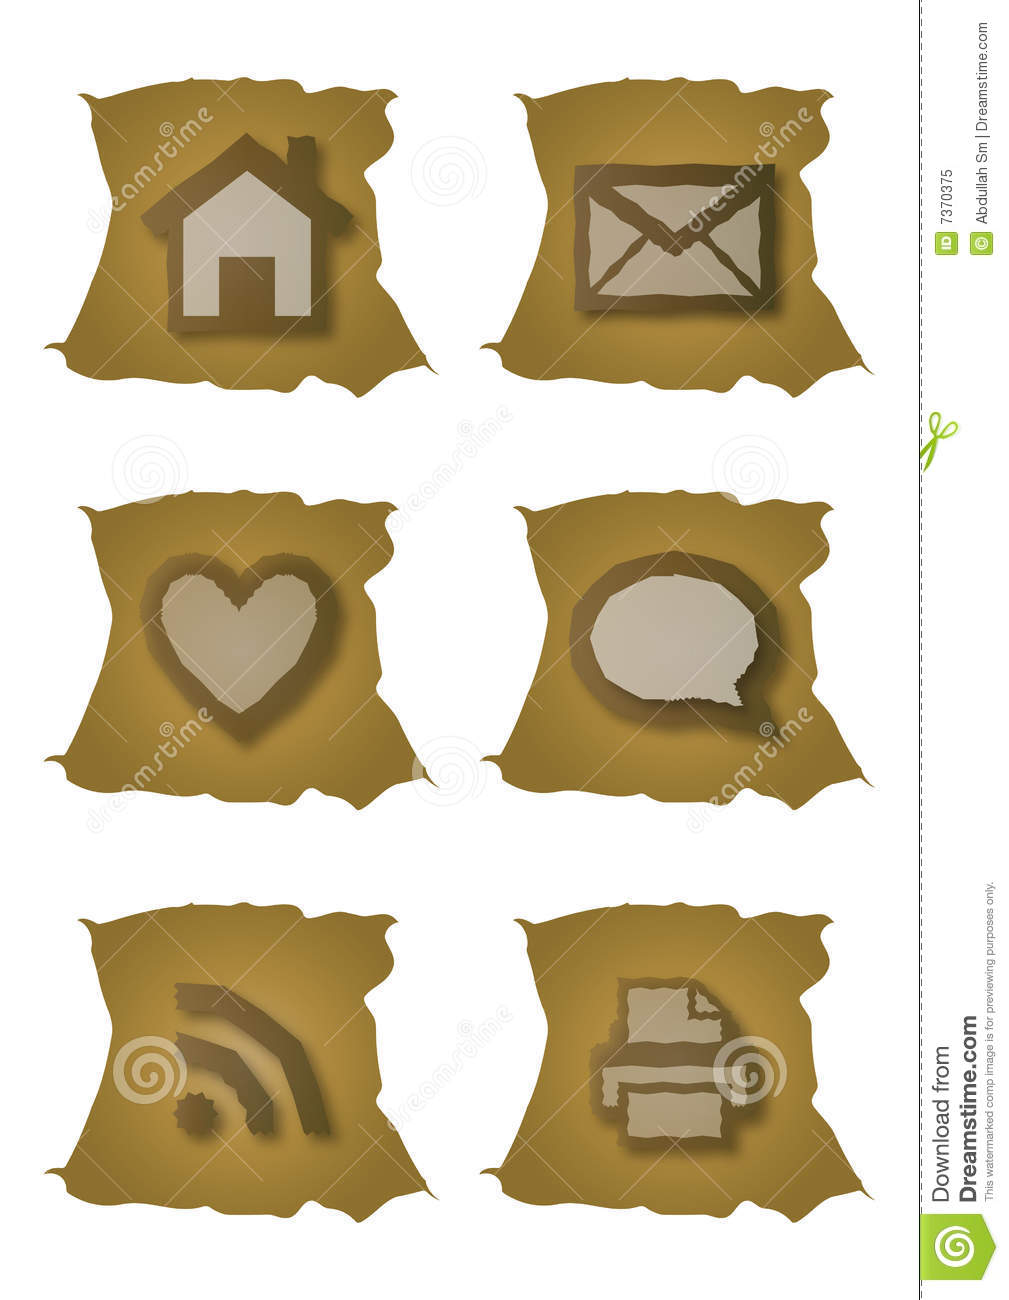 Old web icons